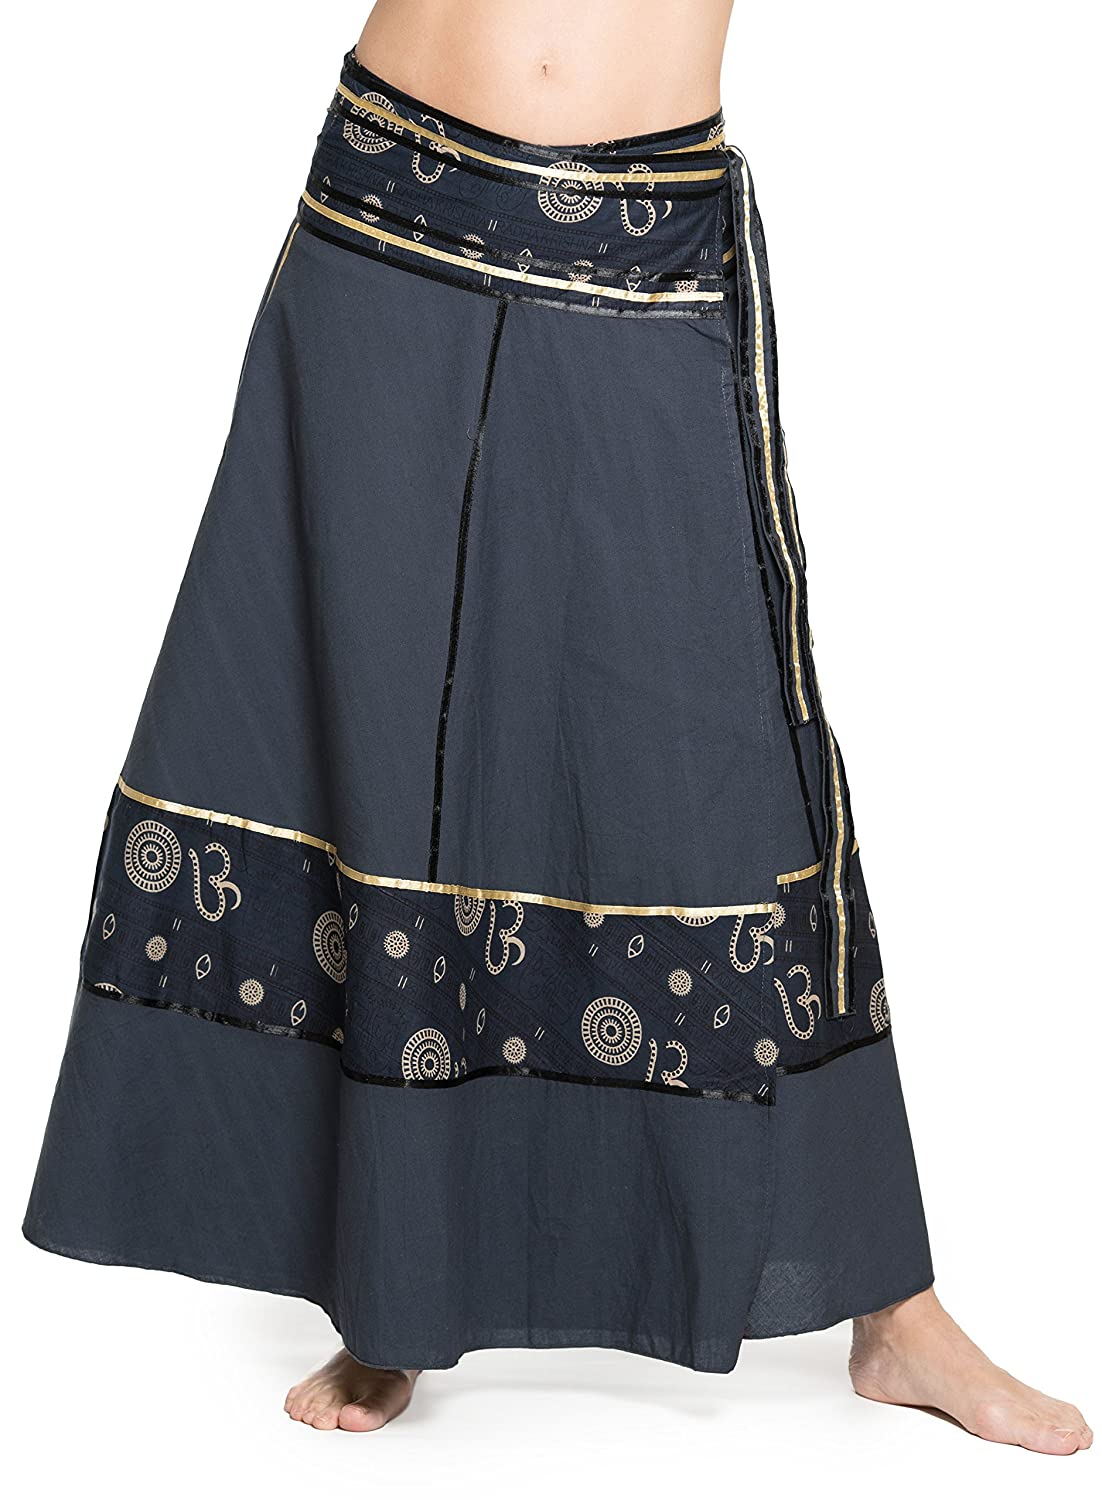 Ufash Wrap-Around Skirt Goa Gipsy - Colorful Maxi Skirt from India, with Ties - Many Different Designs